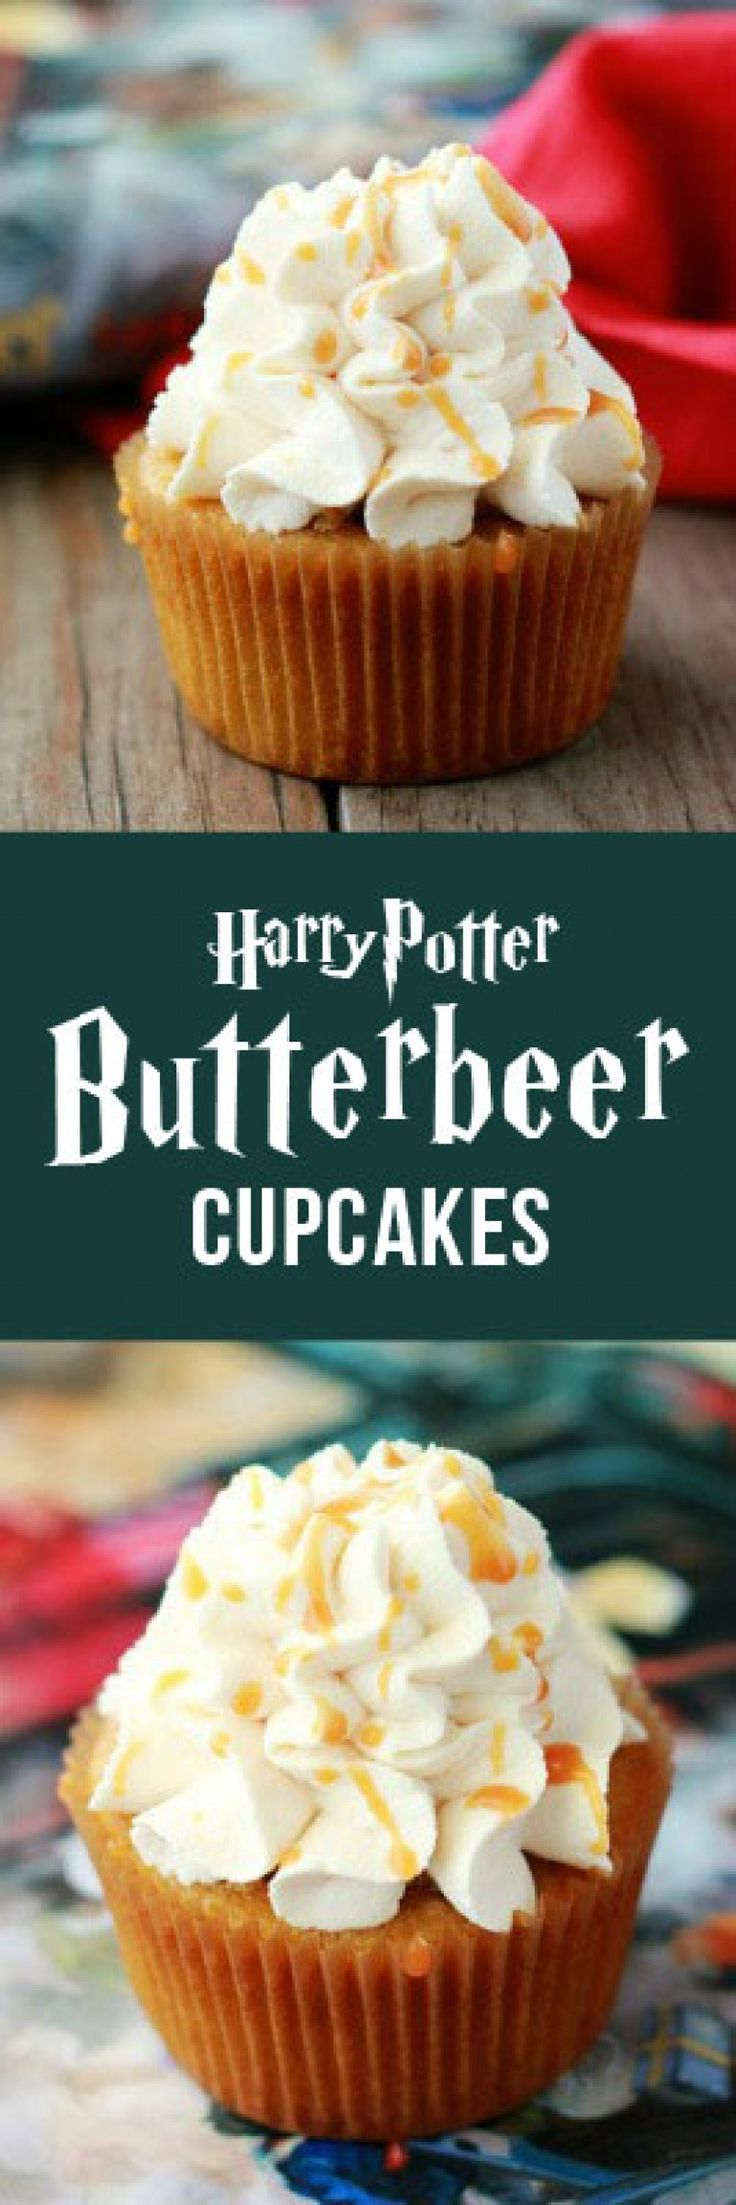 1Harry-Potter-Butterbeer-Cupcakes